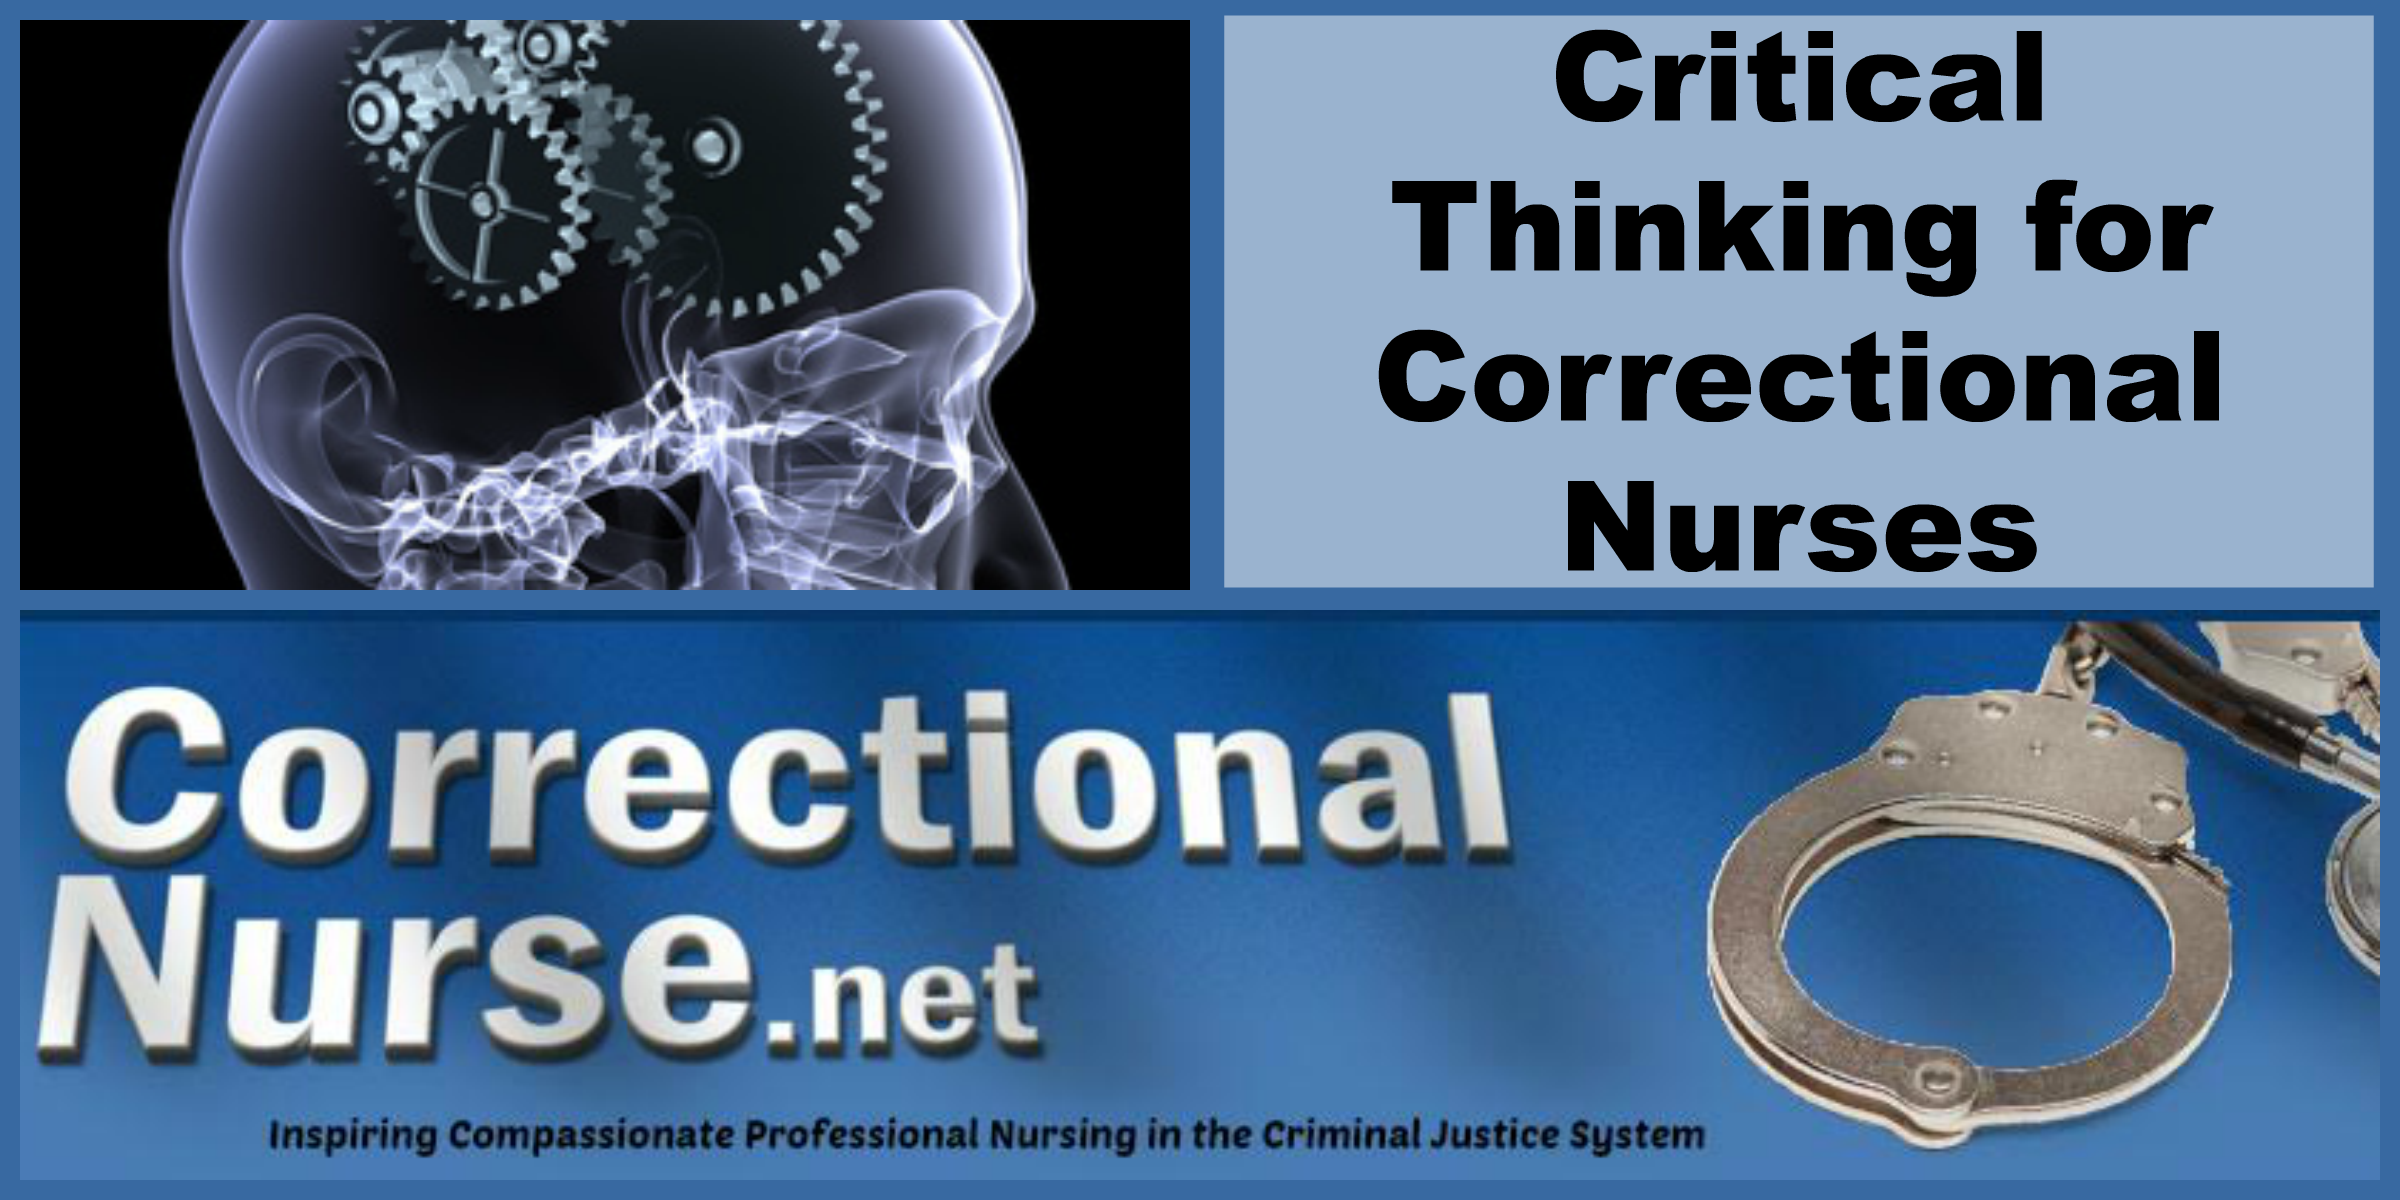 critical thinking and clinical decision making in critical care nursing Calling all nurses critical thinking in nursing is more than 90% of the work and it will help you in making safe and effective clinical decisions for your.